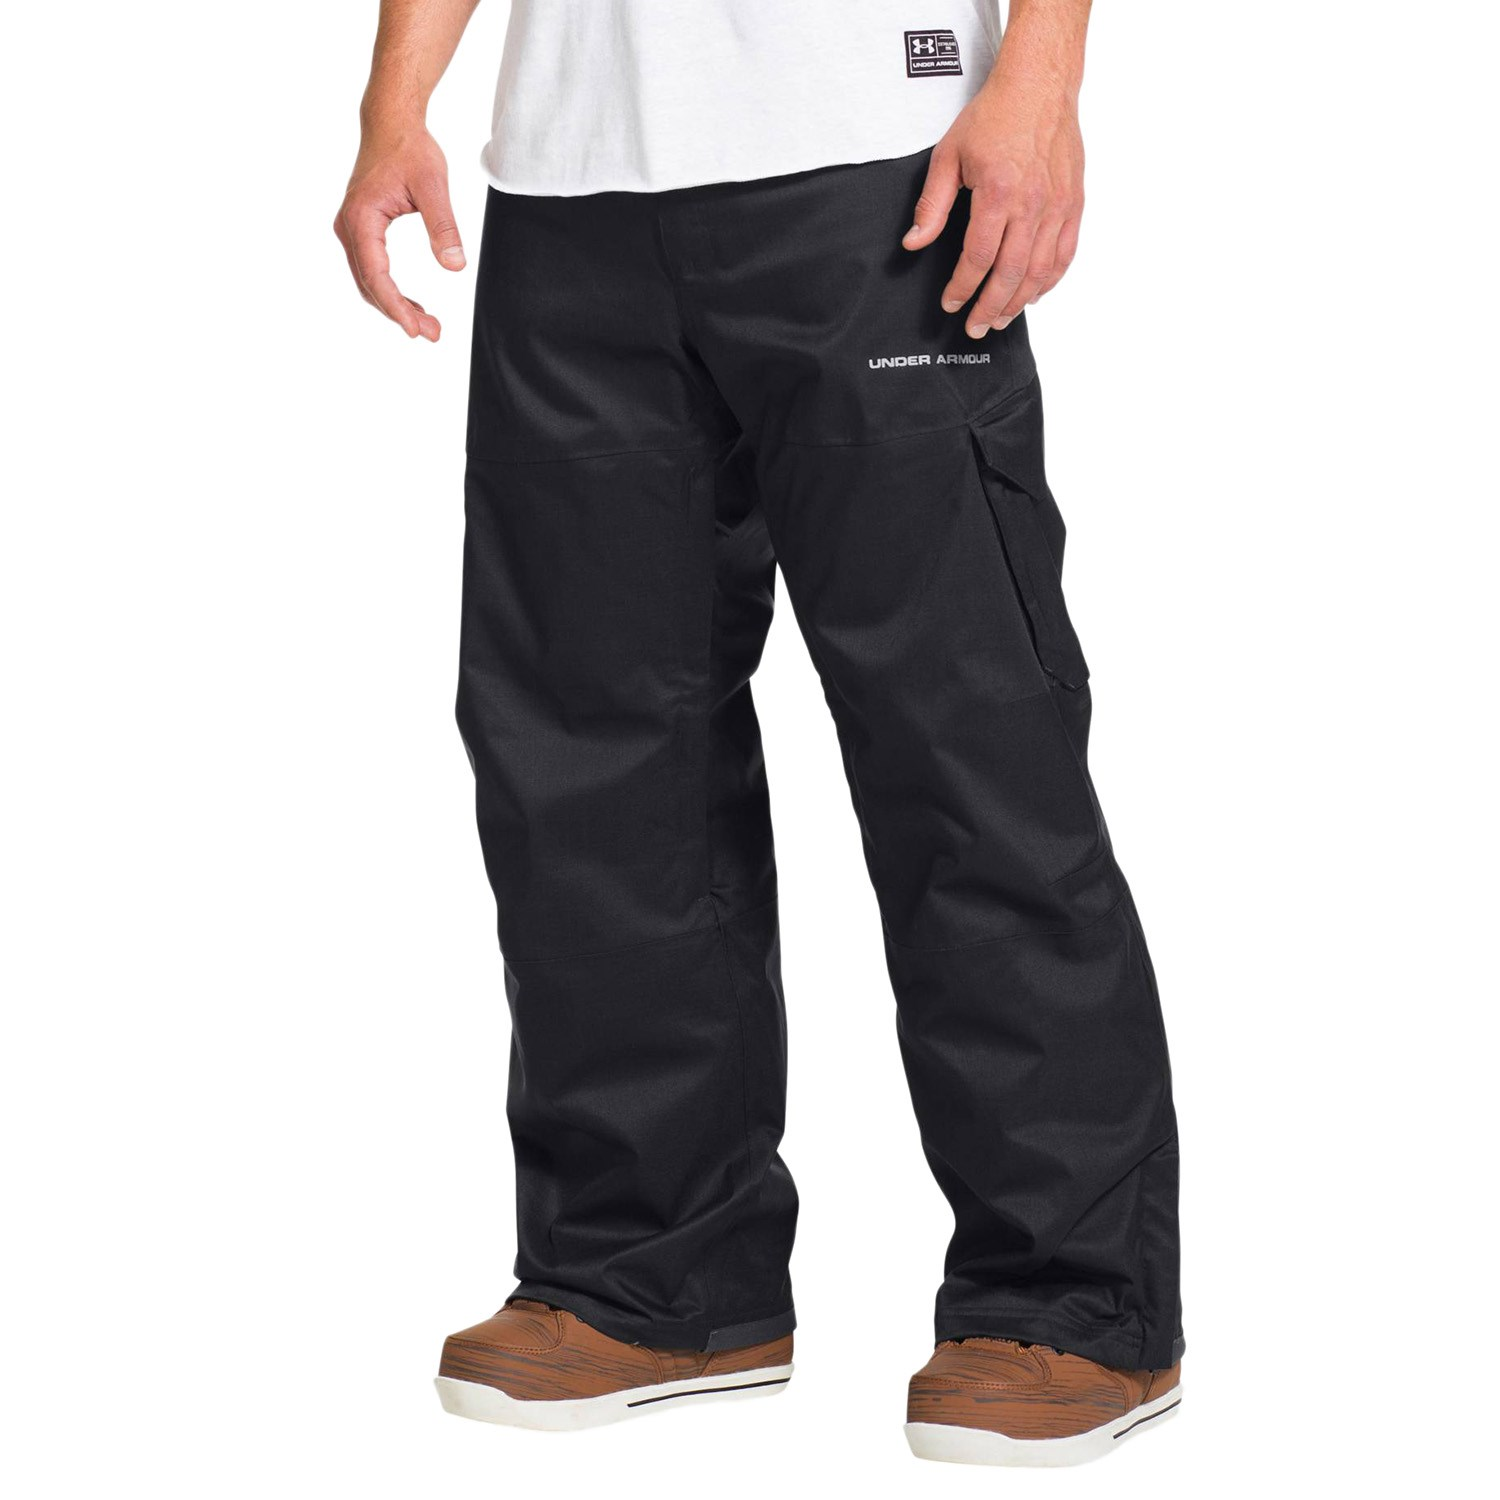 3b4dd301f465 under armor pants cheap   OFF52% The Largest Catalog Discounts